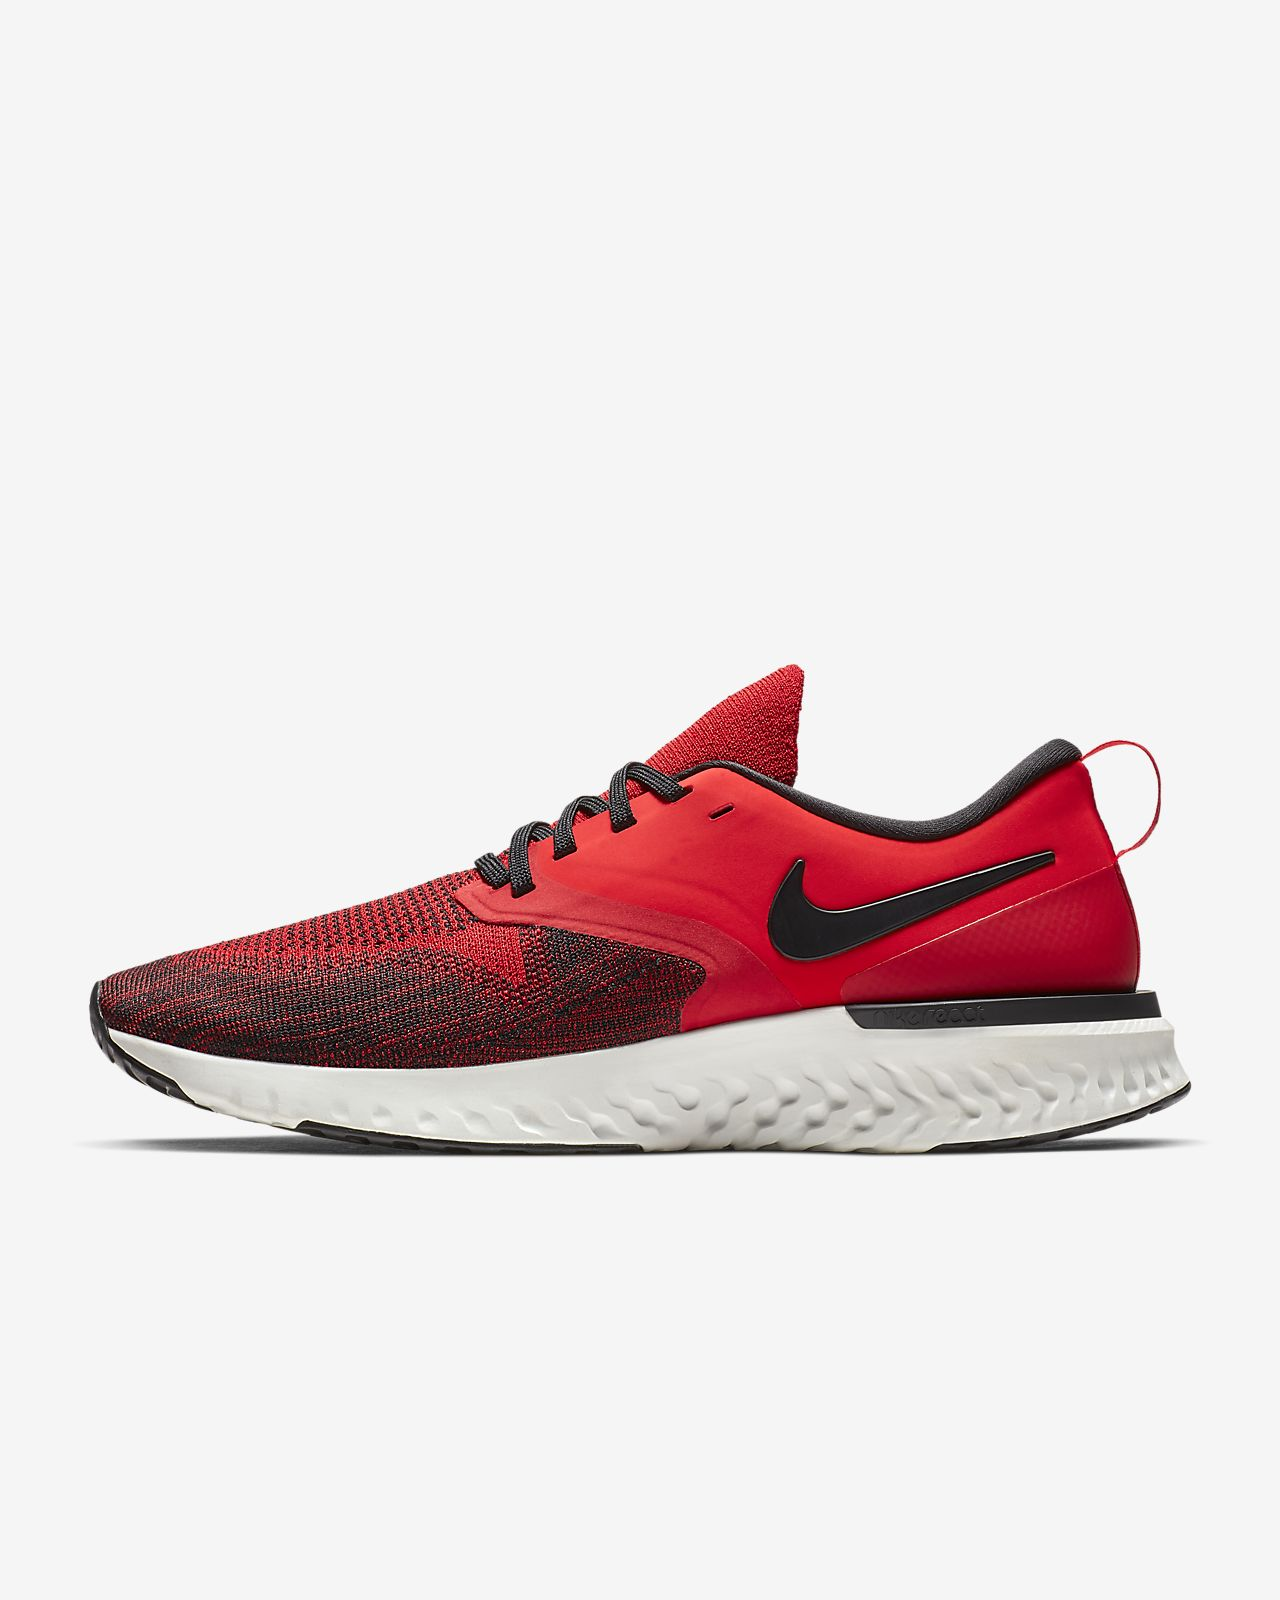 Nike Odyssey React Running Shoes Red White Black Sz 9